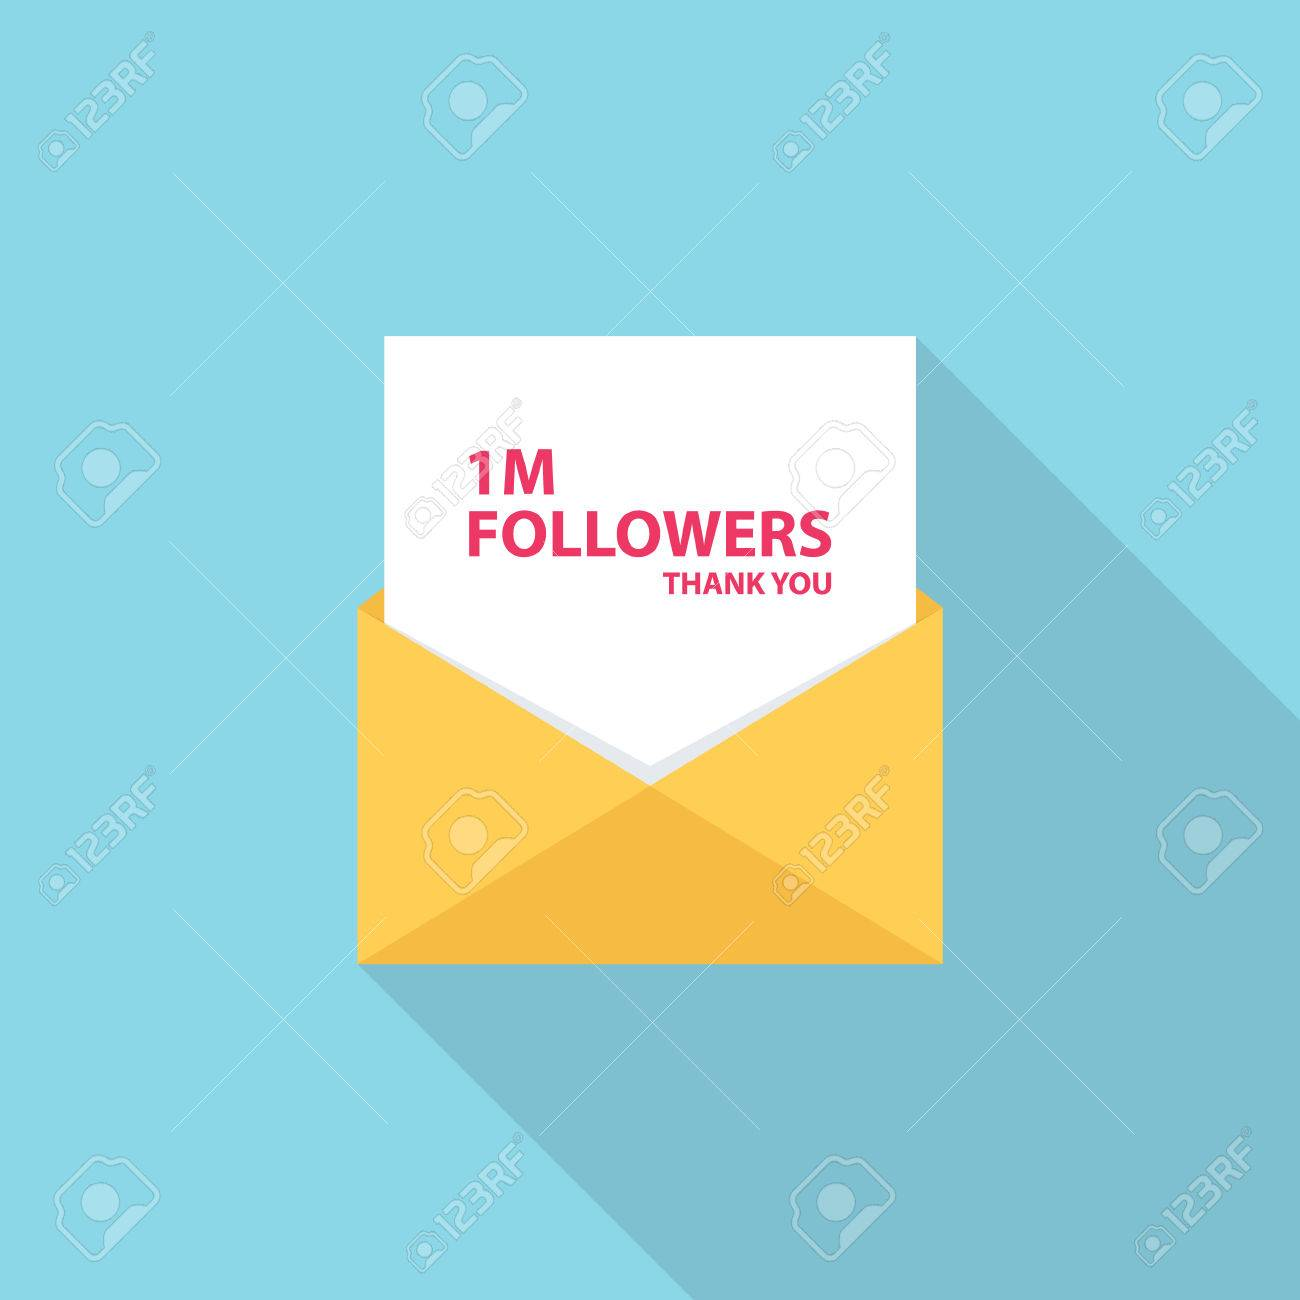 1m followers thank you letter email or message 1 million vector 1m followers thank you letter email or message 1 million followers card template for social networks promotion and advertising expocarfo Gallery